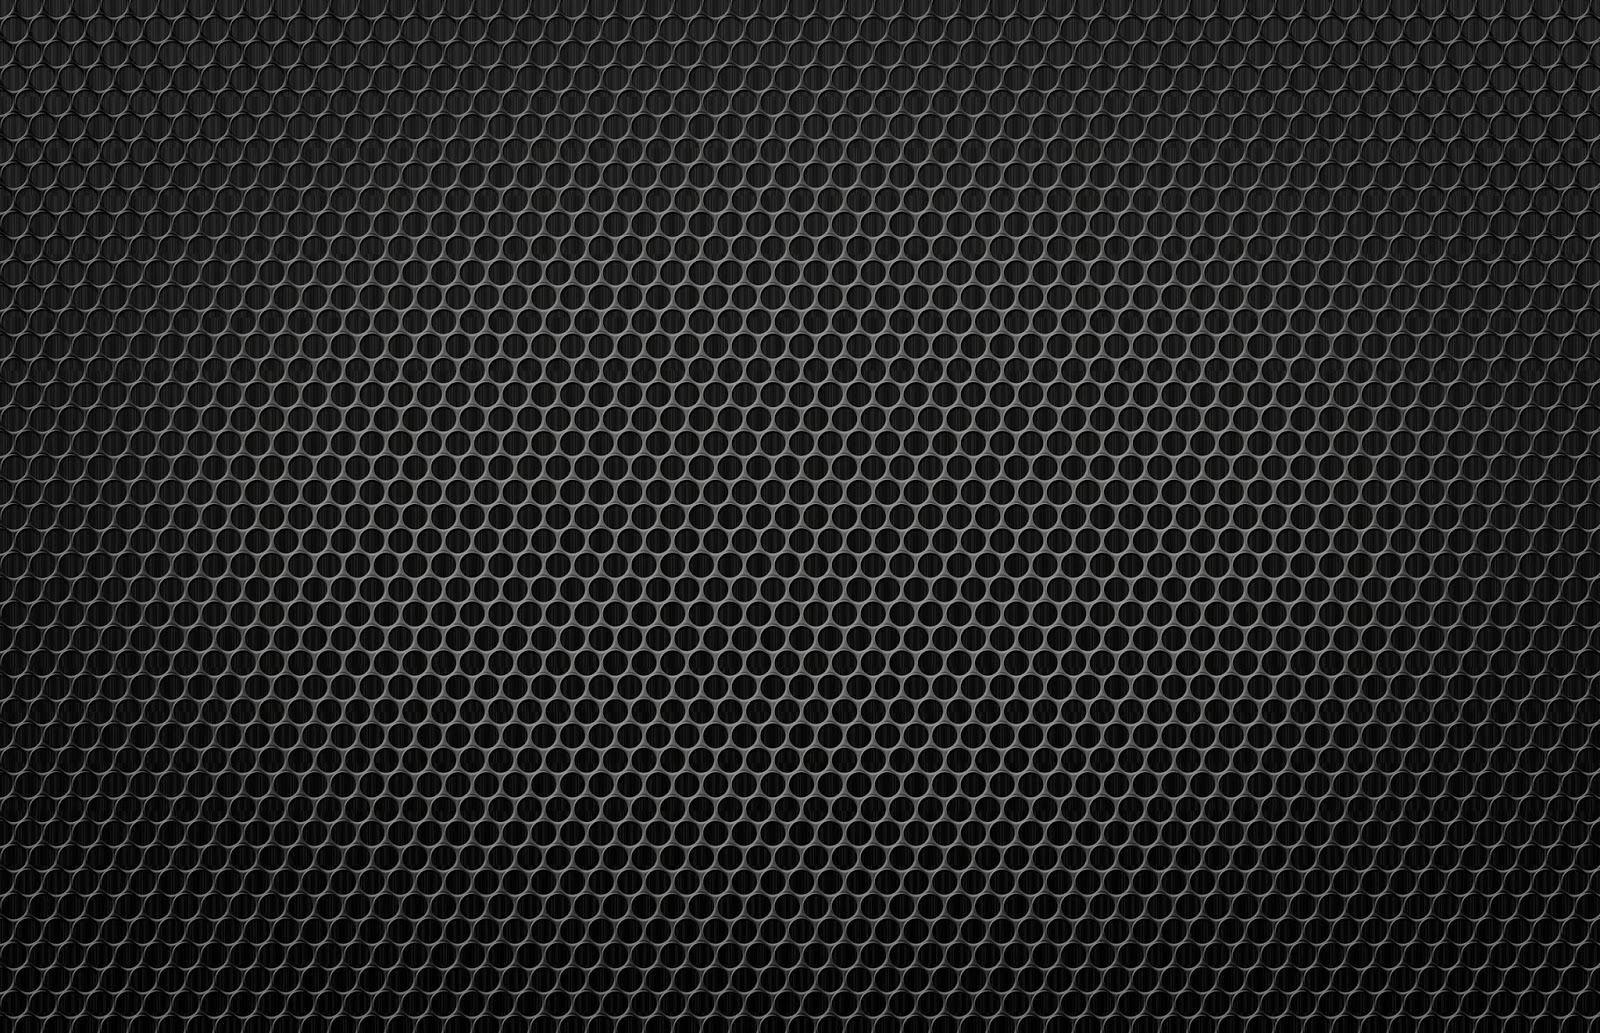 black-graphics-BG-textured-HD-wallpapers-designs-for mobile-desktop-download.jpg